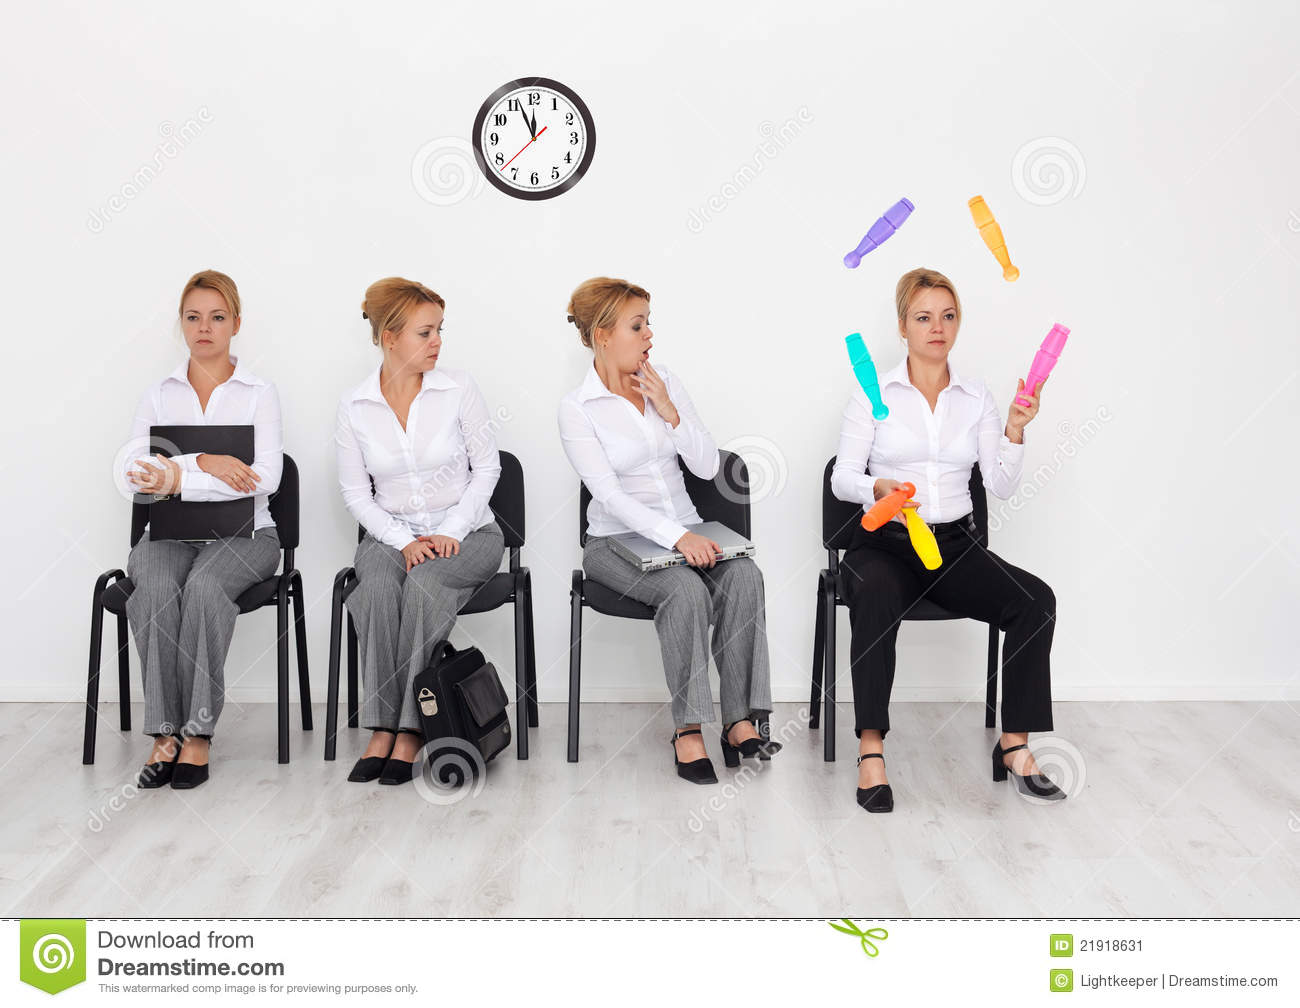 job interview candidates special abilities stock image job interview candidates special abilities